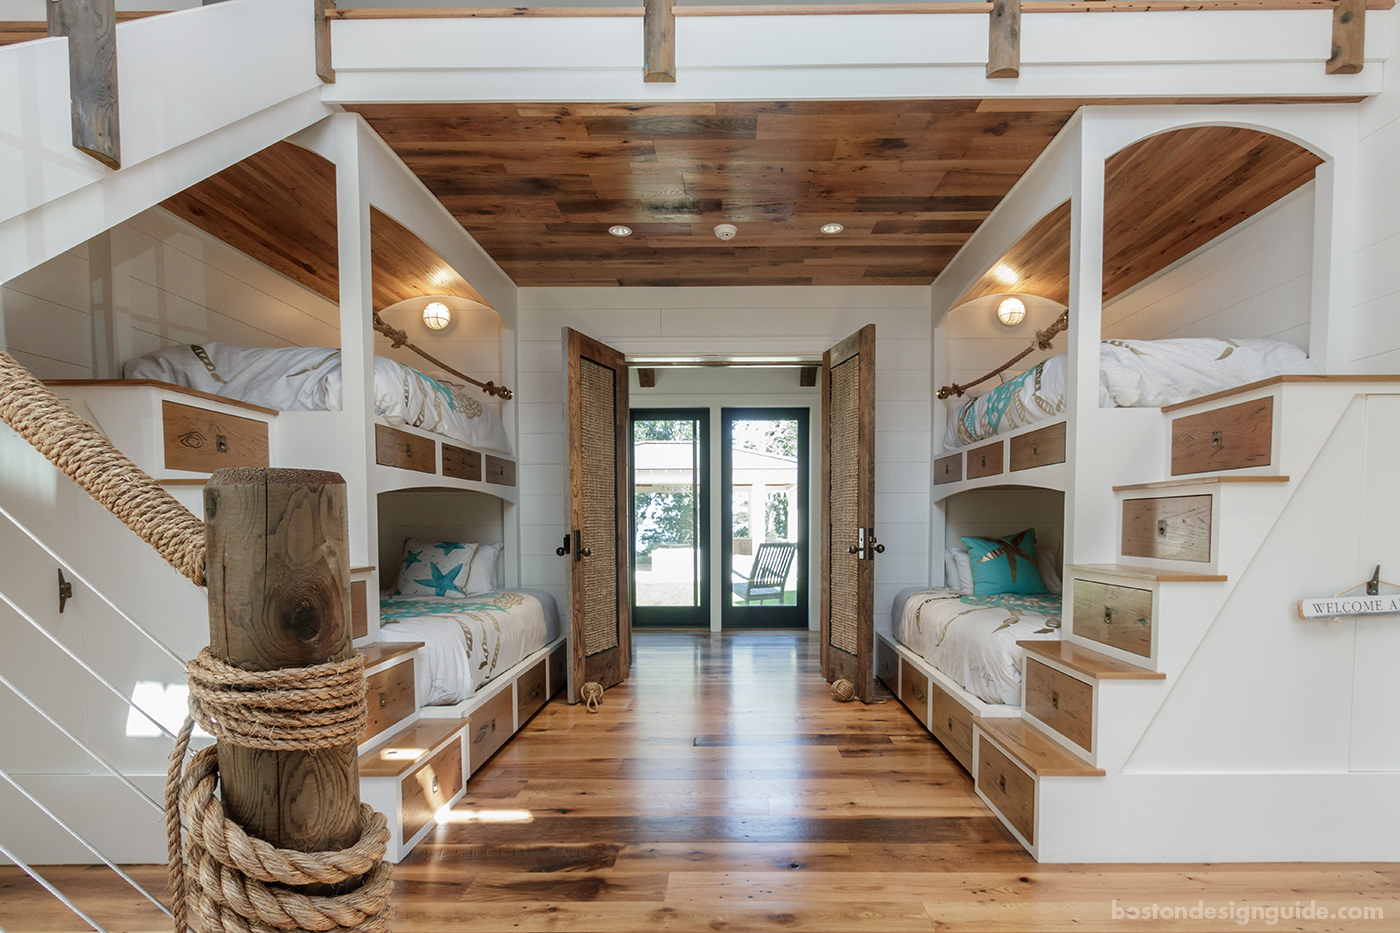 Cape Cod bunk room with rope accents by BPC Architecture